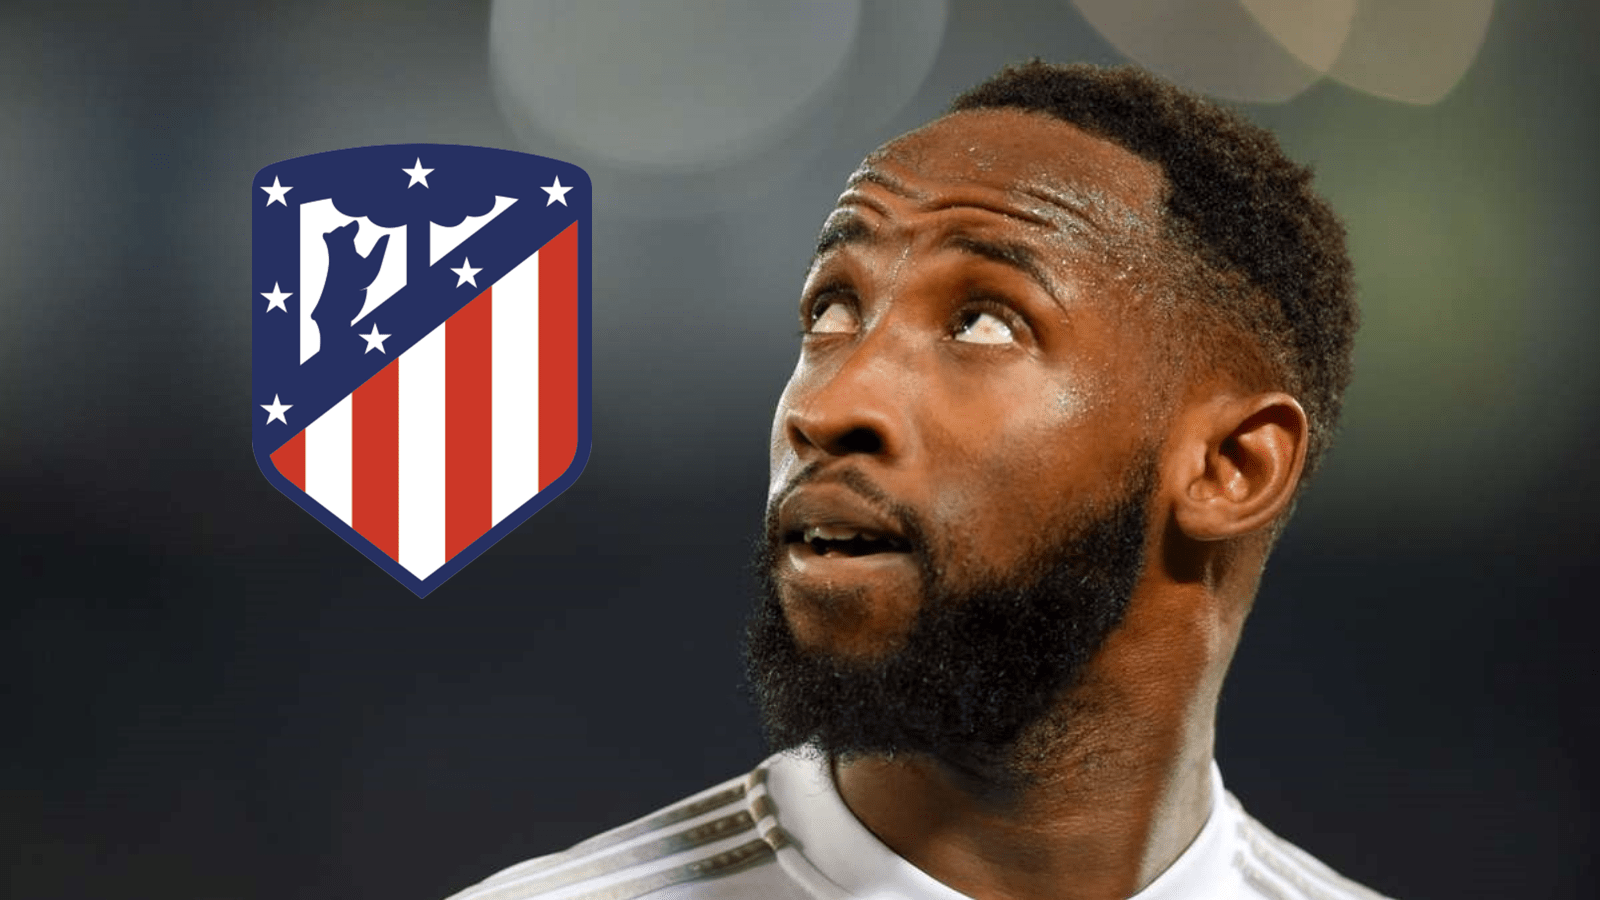 Atletico Madrid reach agreement to sign Dembele on loan from Lyon with €33m option to buy